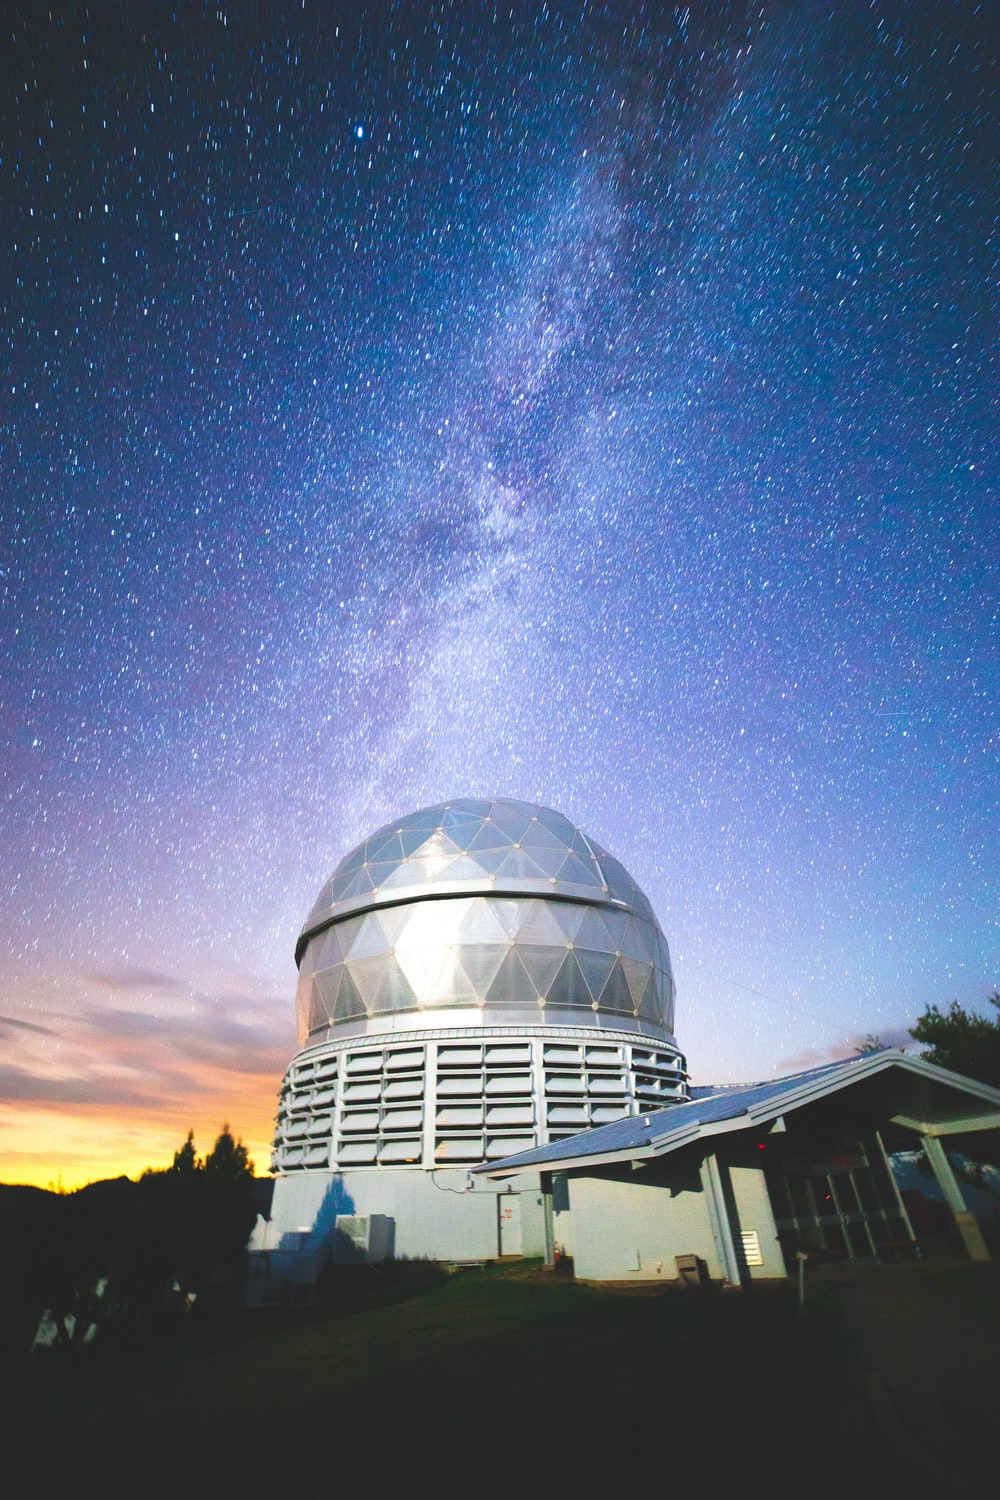 white dome building under starry night